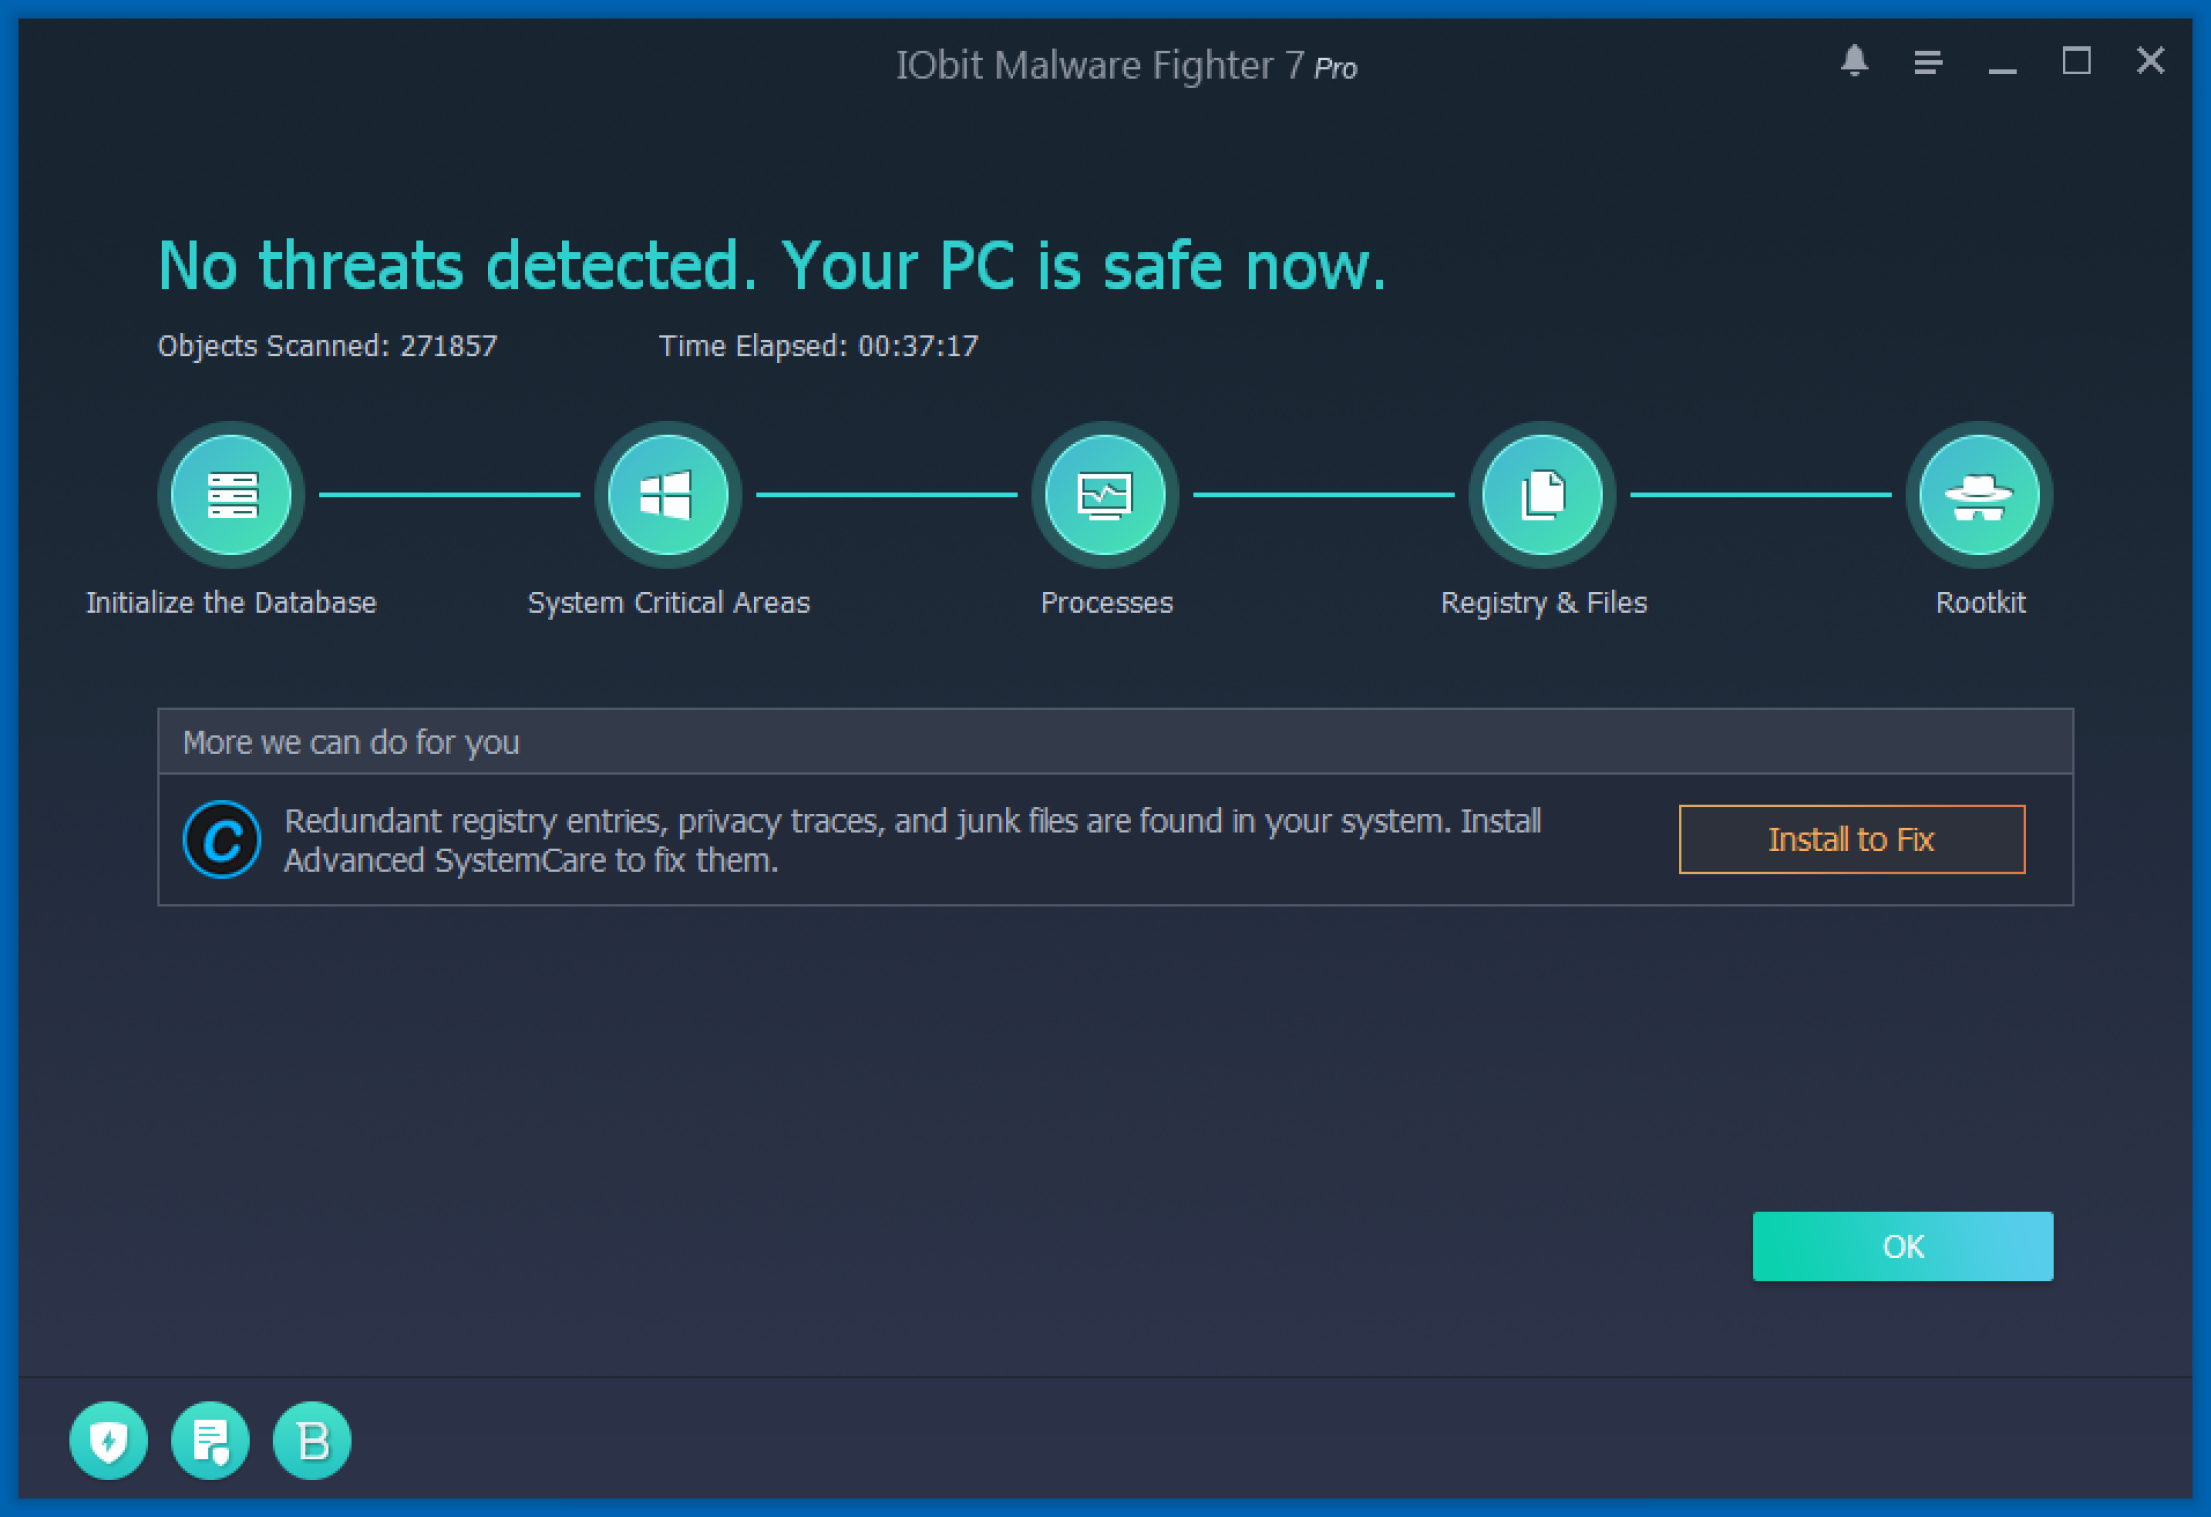 Iobit Malware Fighter Pro Crack License key